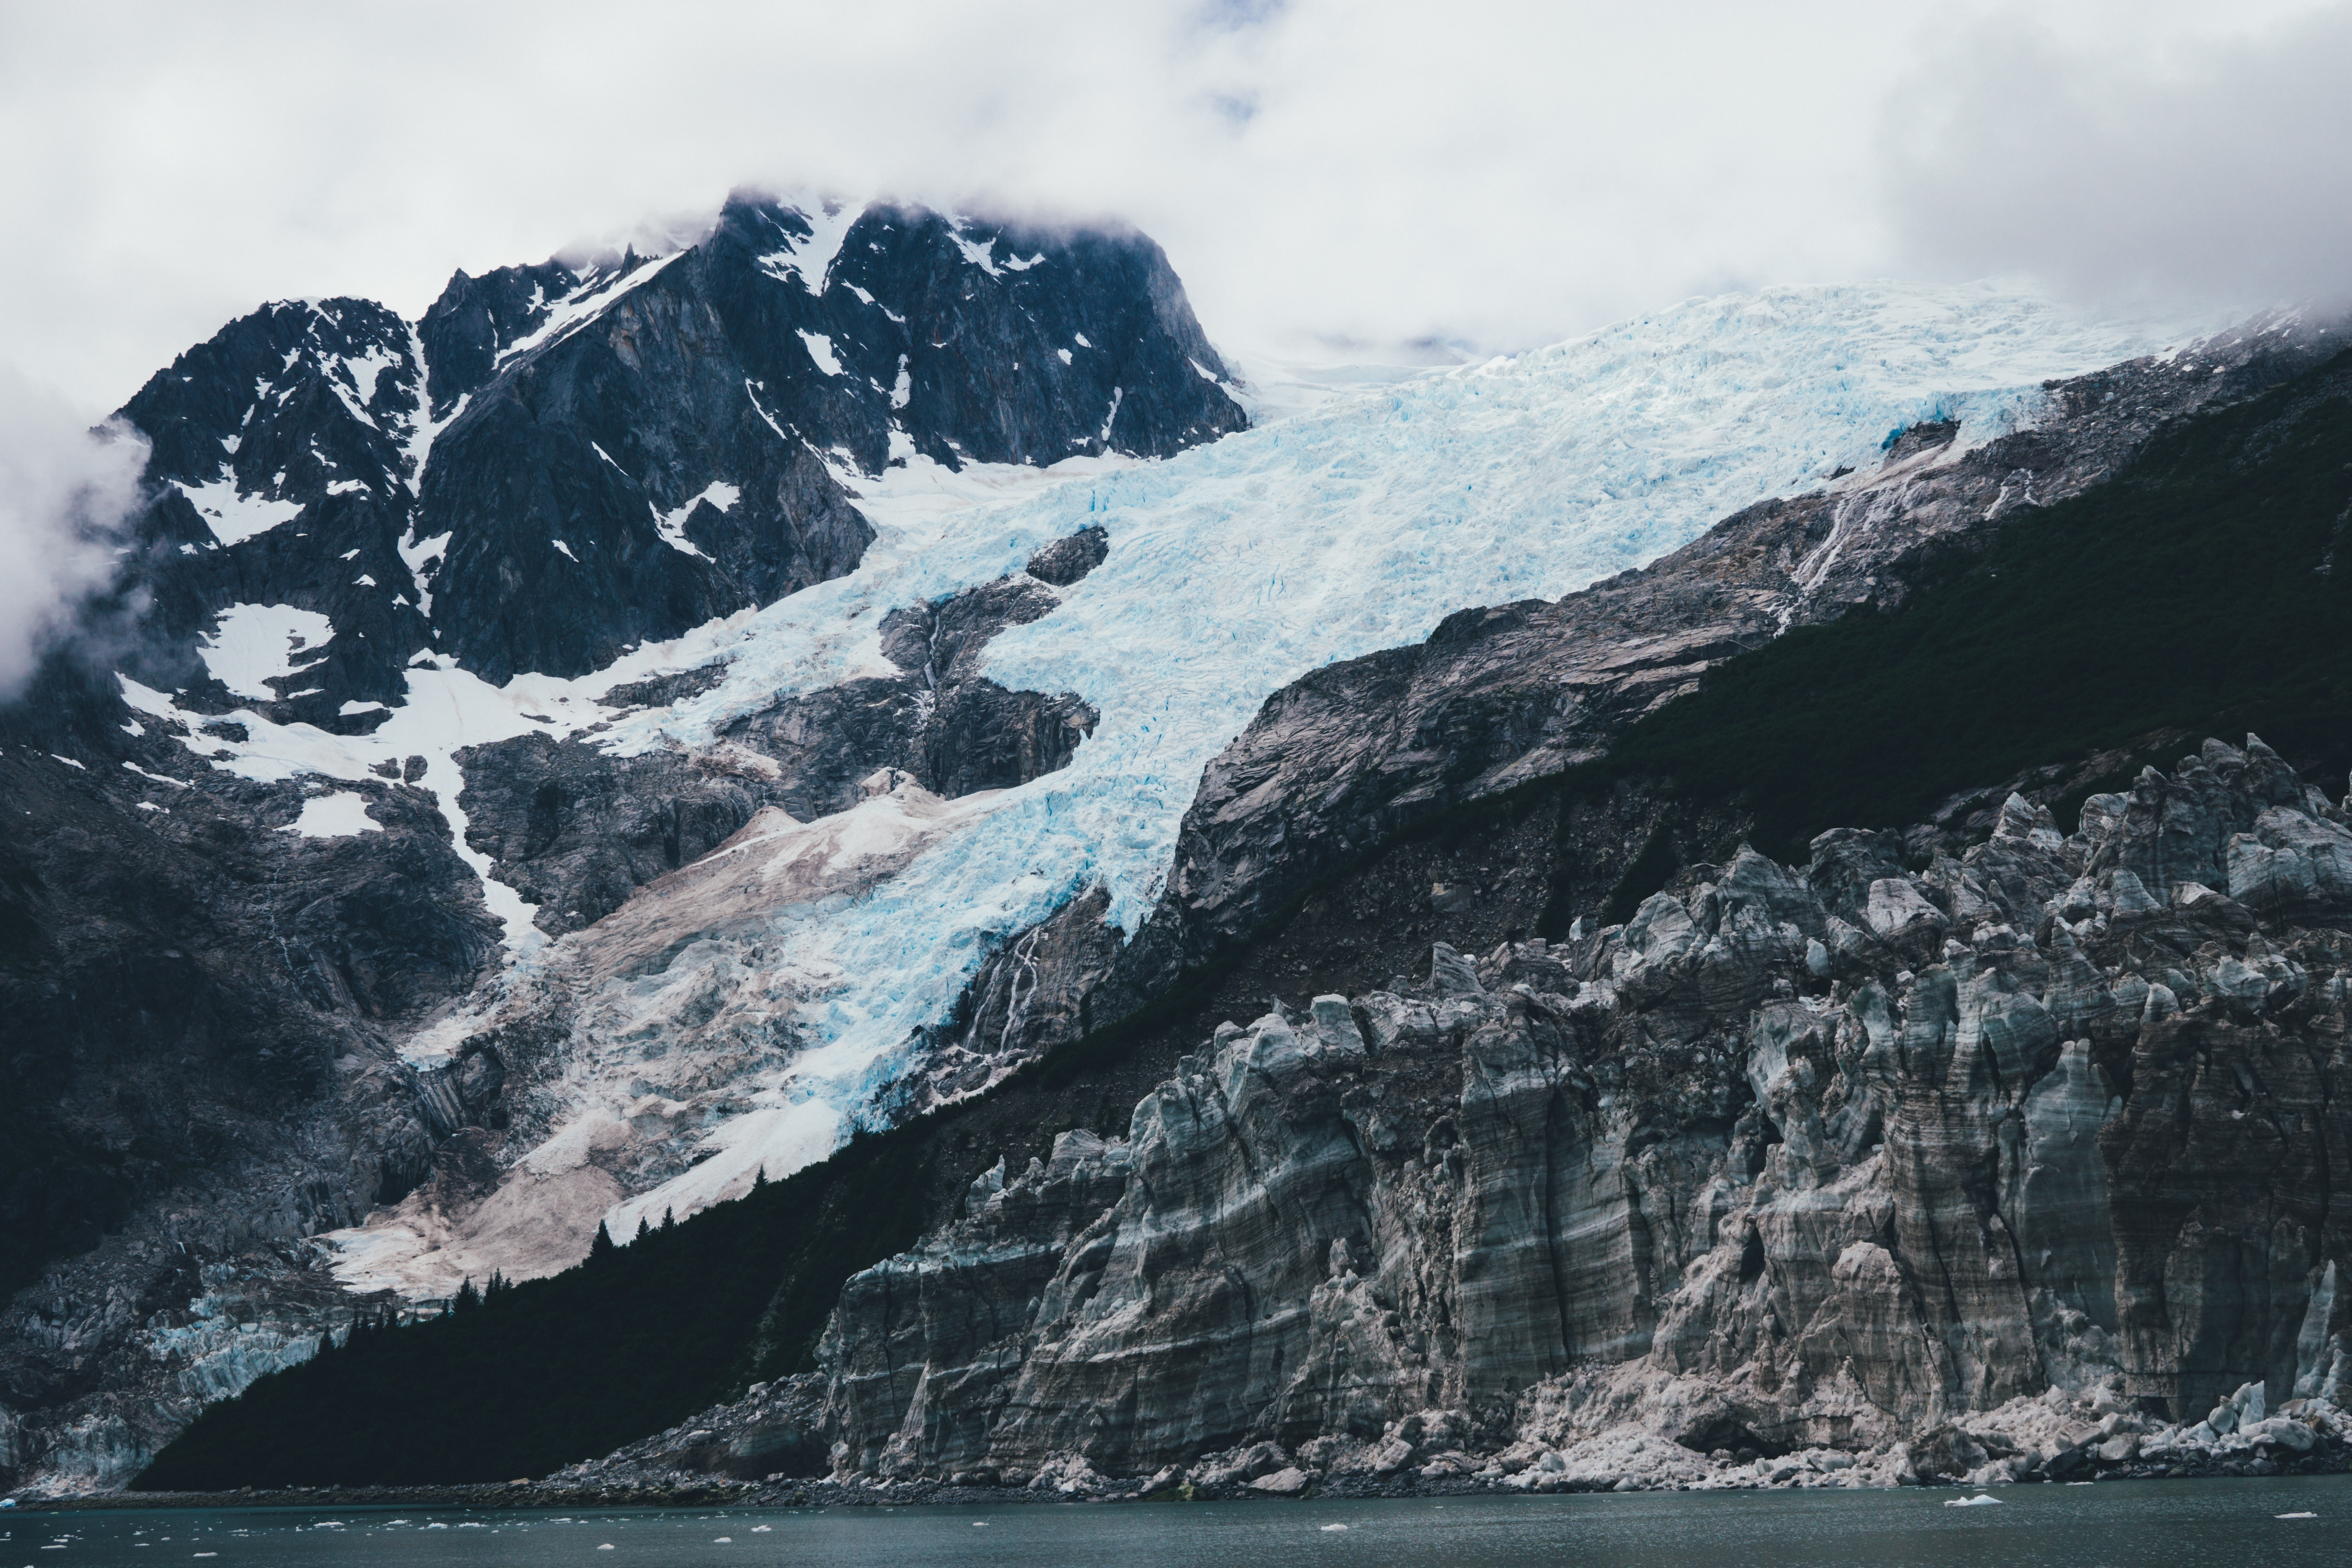 An icy glacier slope in Kenai Fjords National Park.